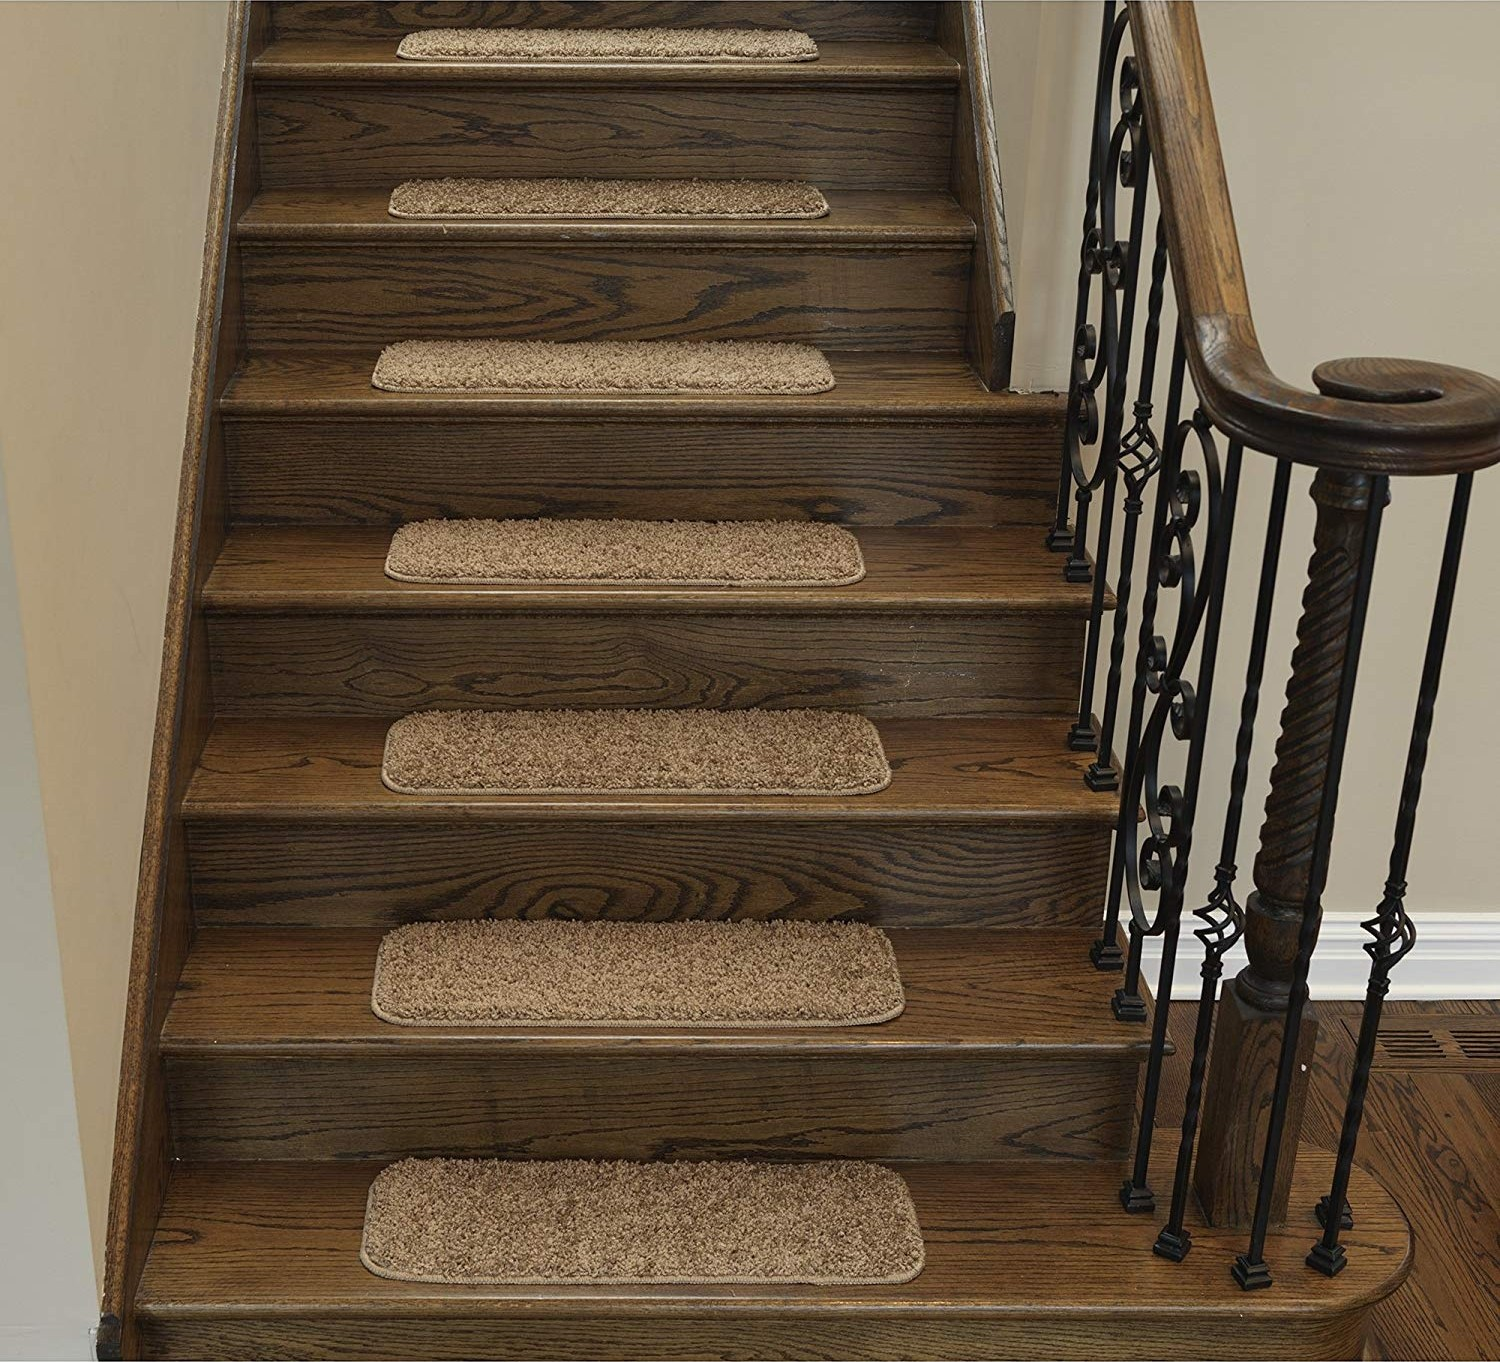 Top 10 Carpets For Stairs In 2020 Highly Recommend In 2020   Gloria Rug Stair Treads   Rubber Backing   8.5 X26   Decor Rugs   Overstock   Area Rug